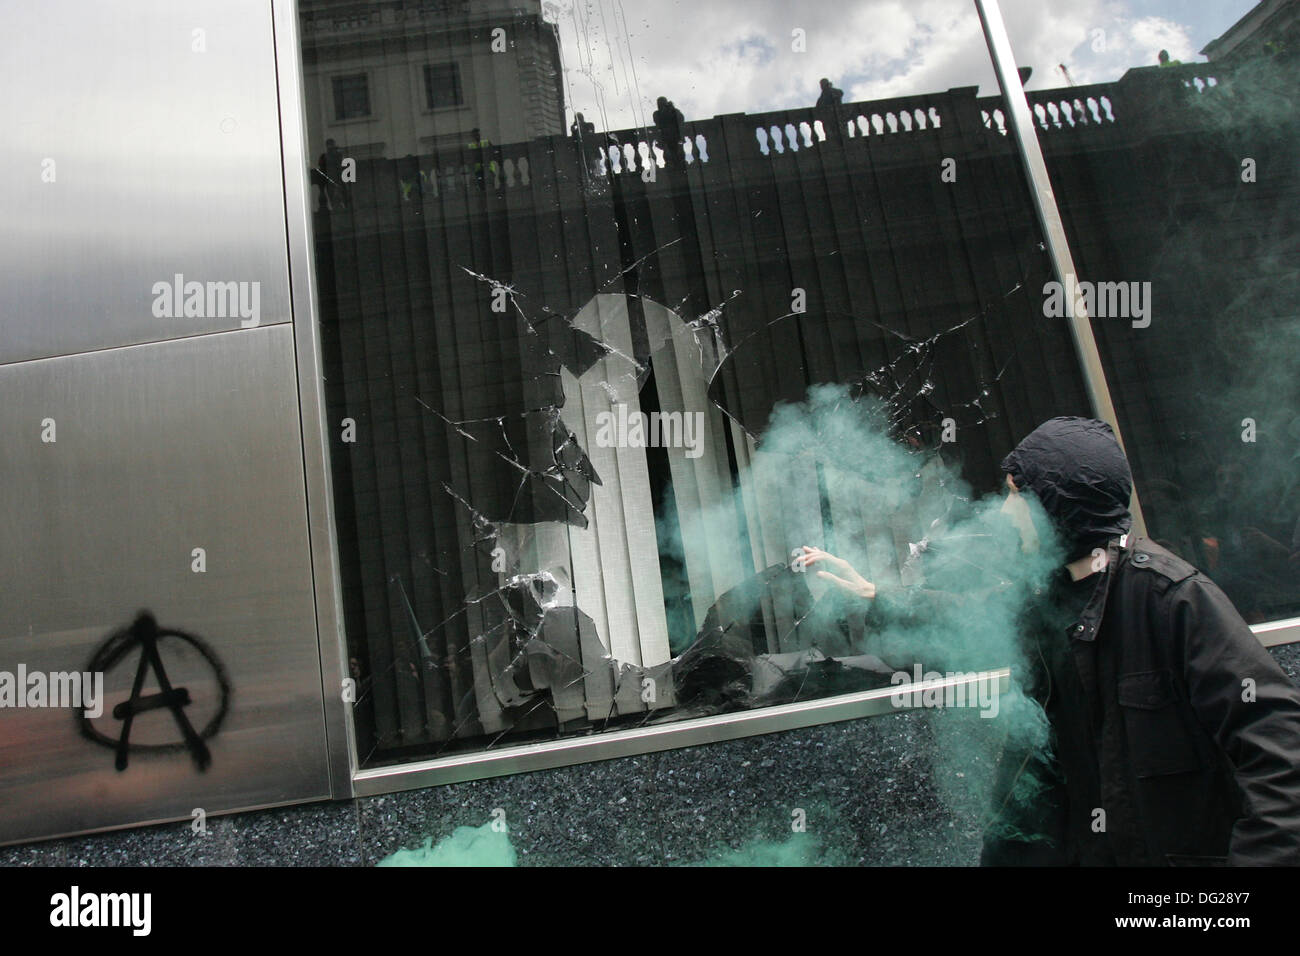 Protesters smashed the Royal Bank of Scotland (RBS) office windows branch near the Bank of England on April 1, 2009. - Stock Image